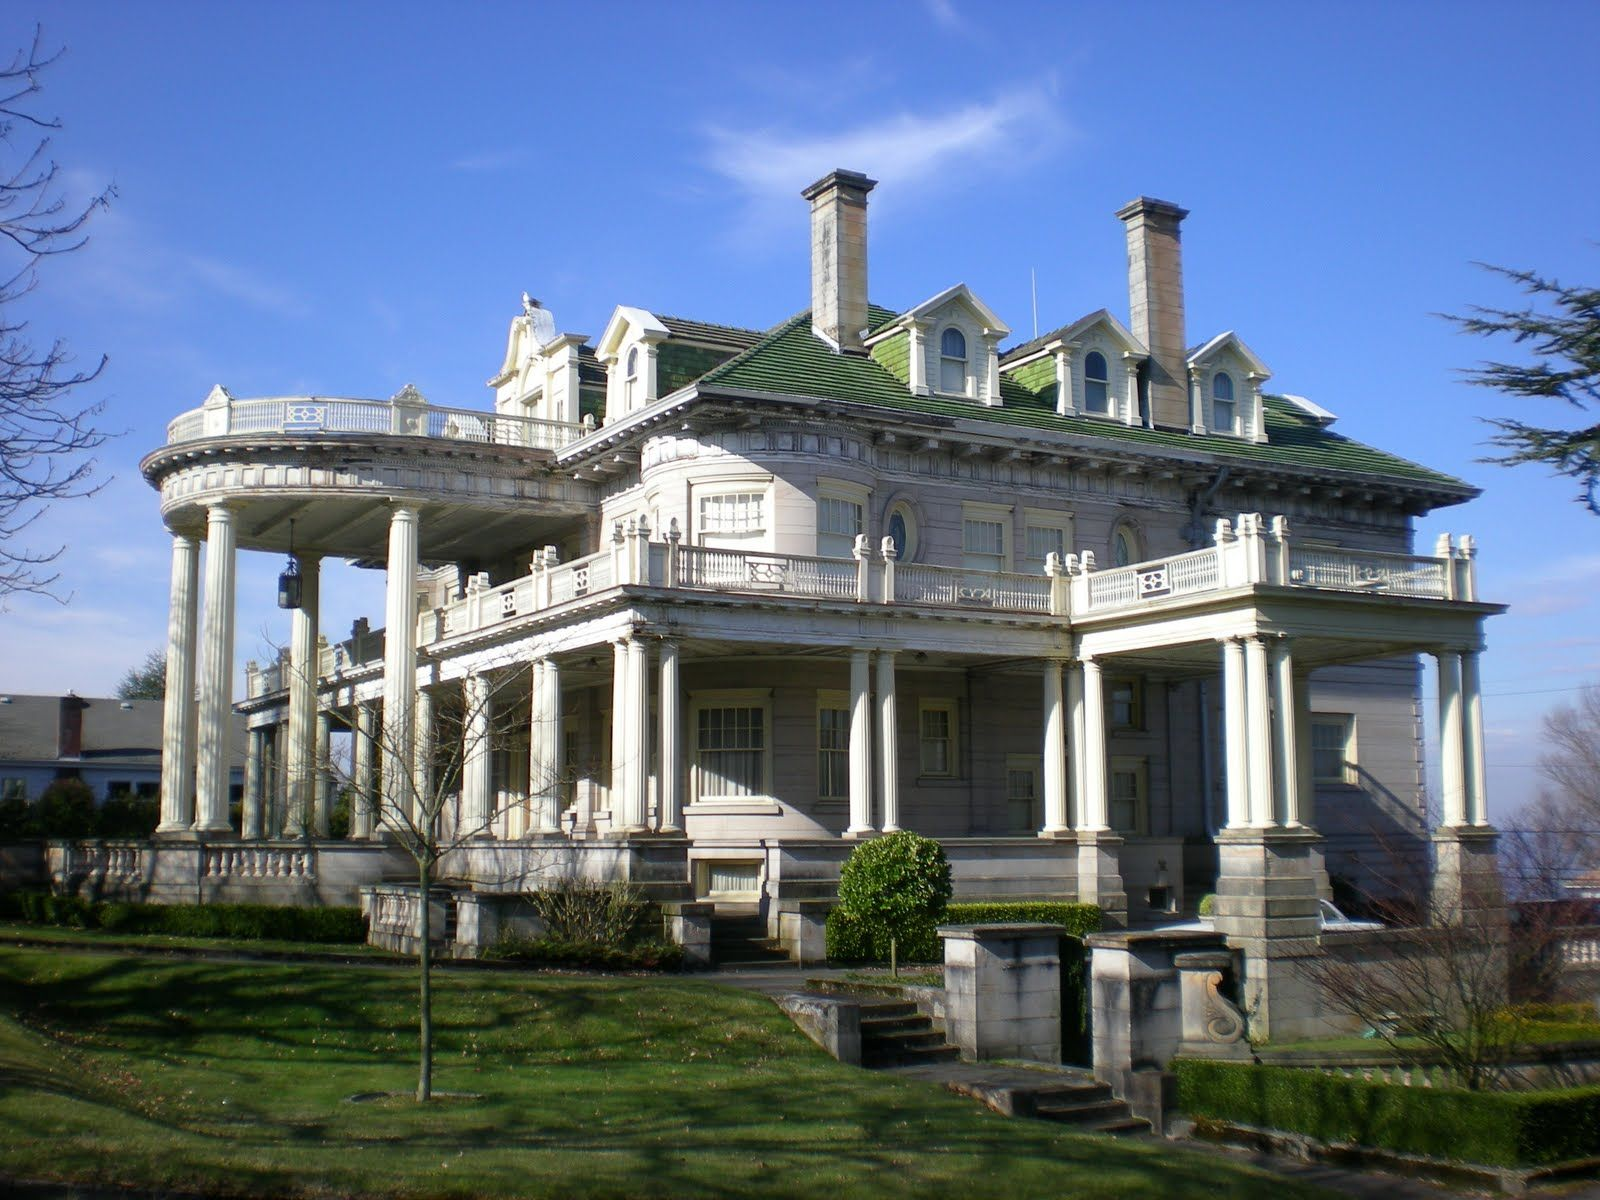 Victorian homes for sale in mississippi - Huge Vintage Houses For Sale More Old Homes Sell In North Tacoma